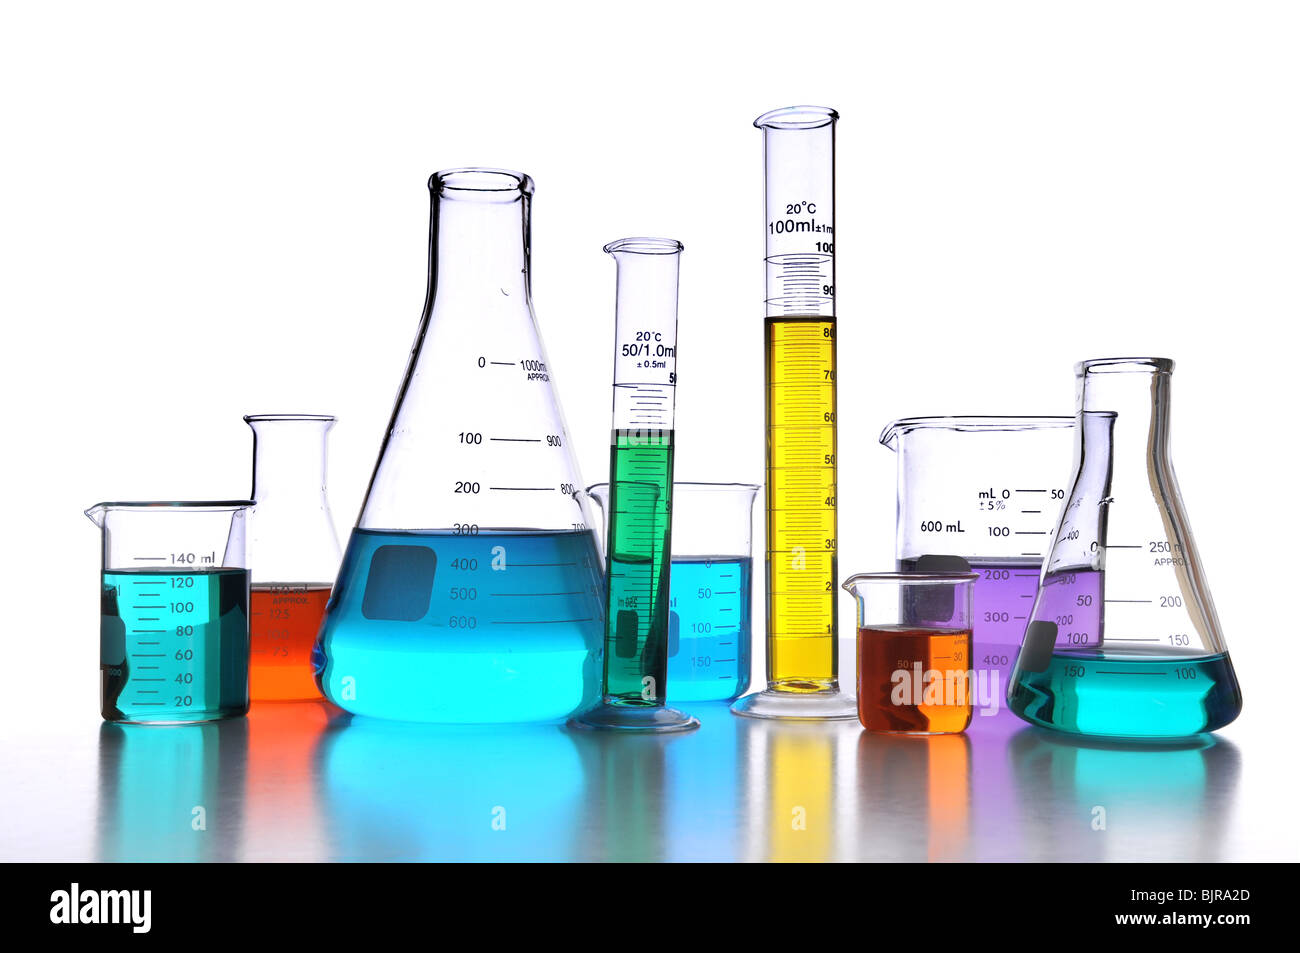 Laboratory glassware over white background with reflections on surface - Stock Image